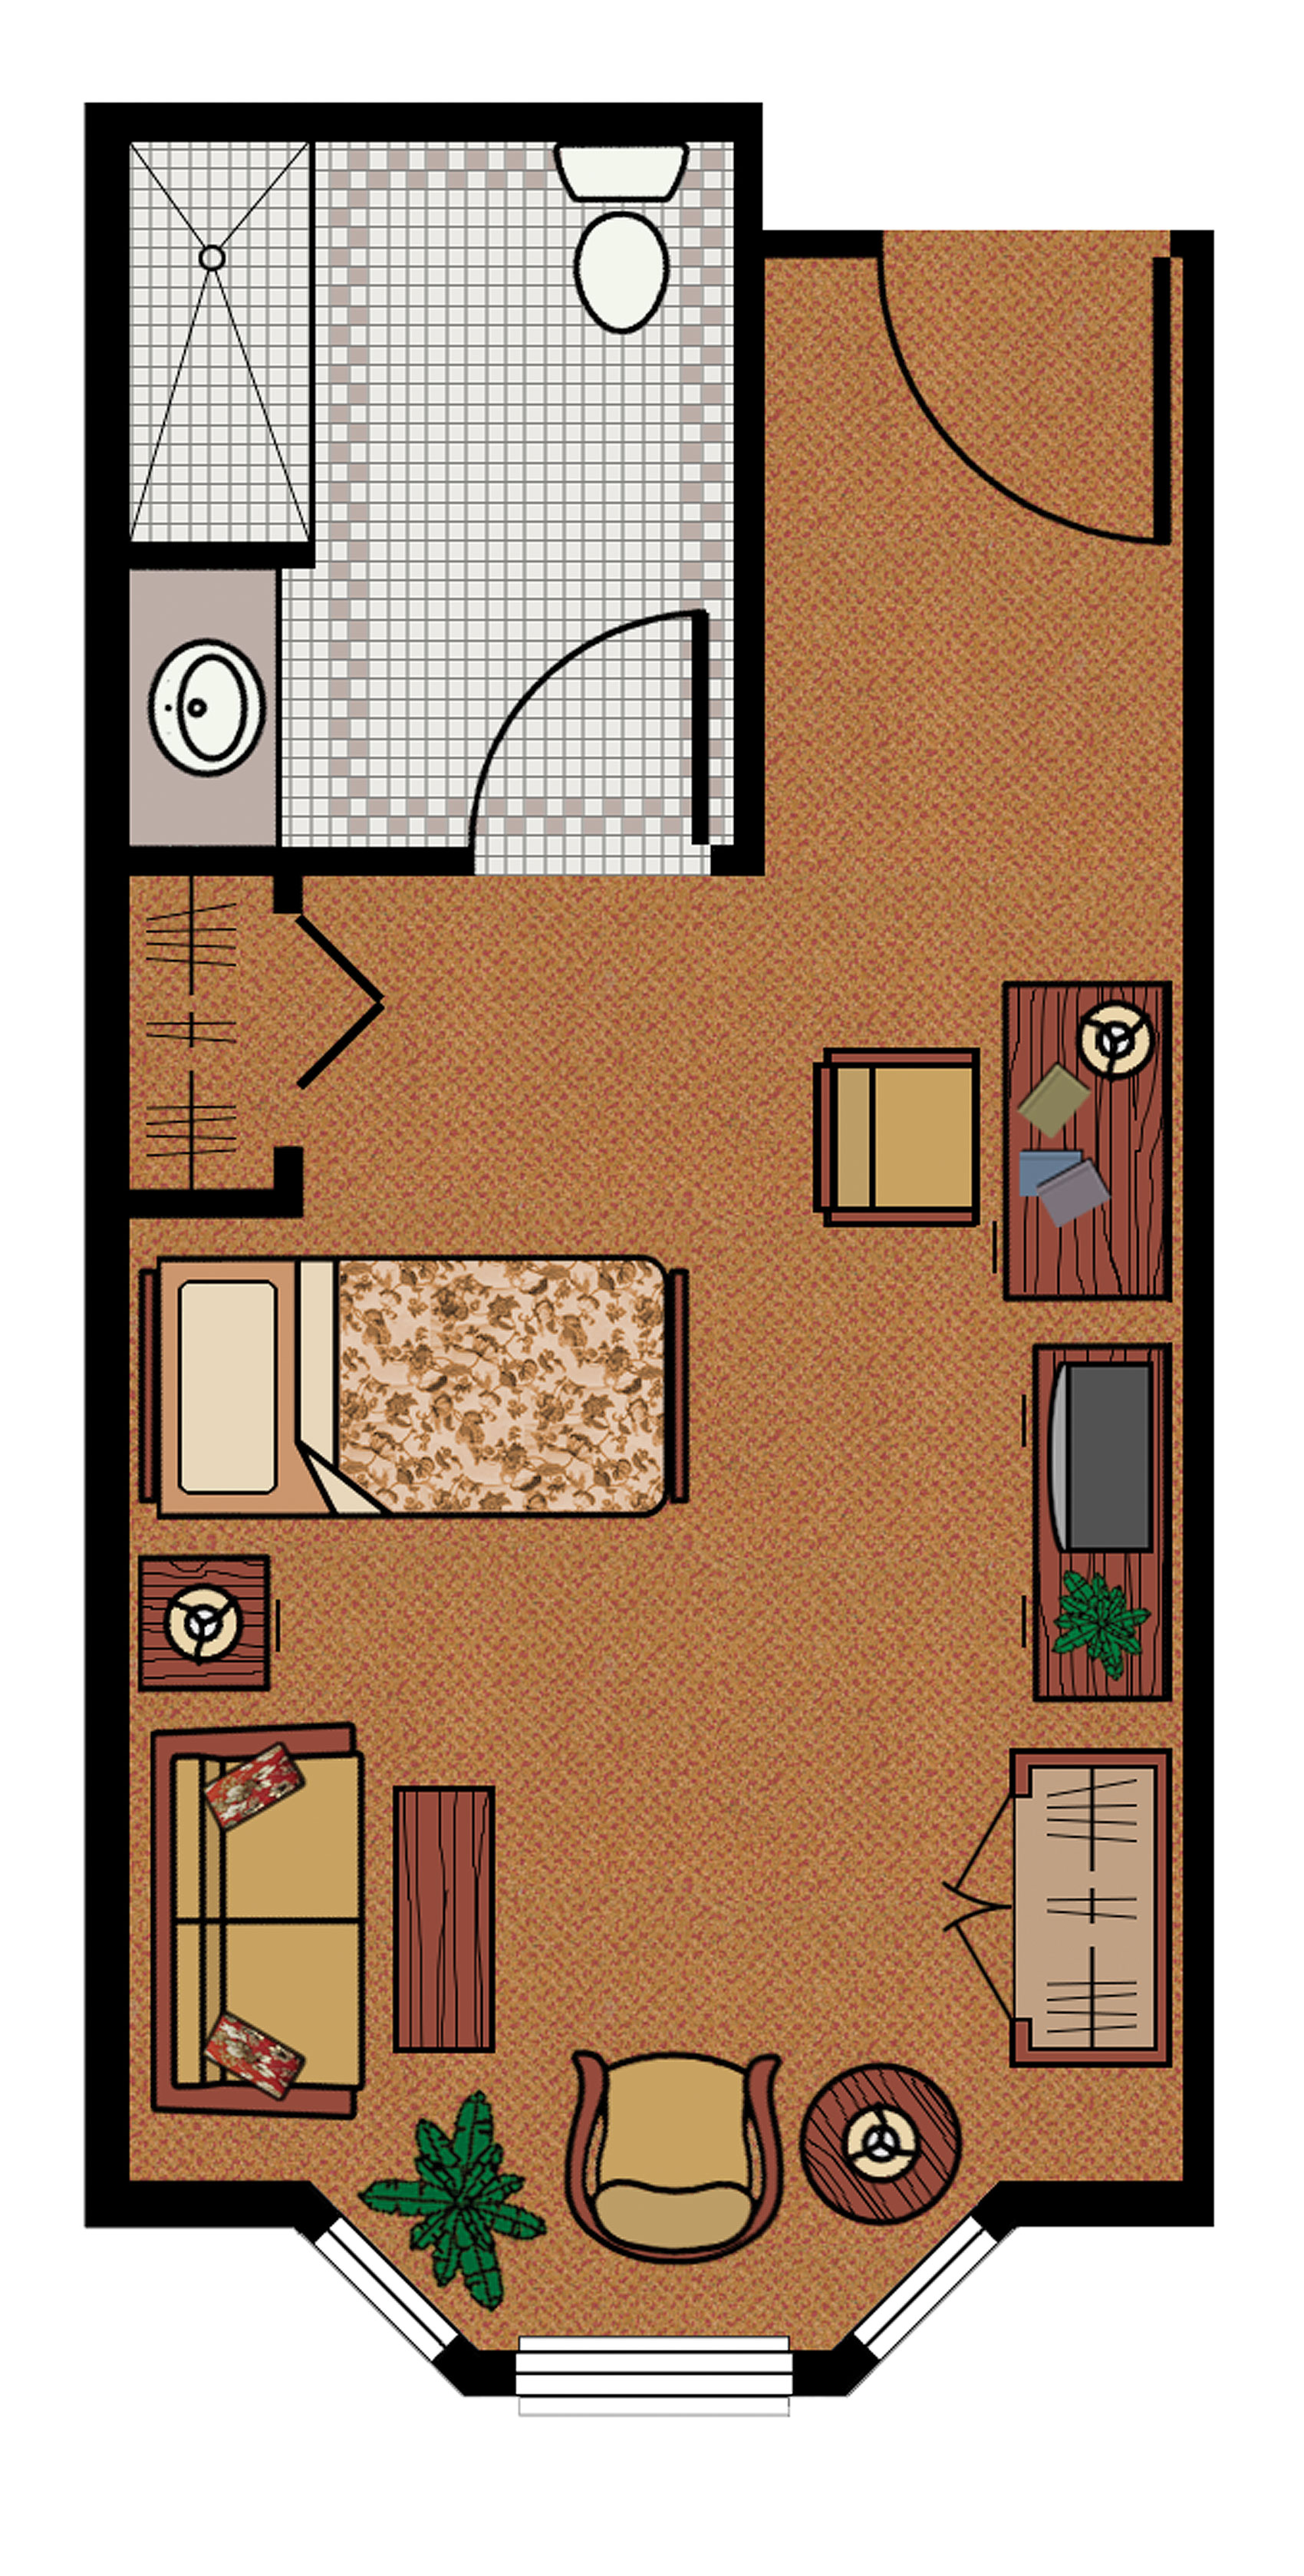 A graphic of a floor plan for a large, private condo